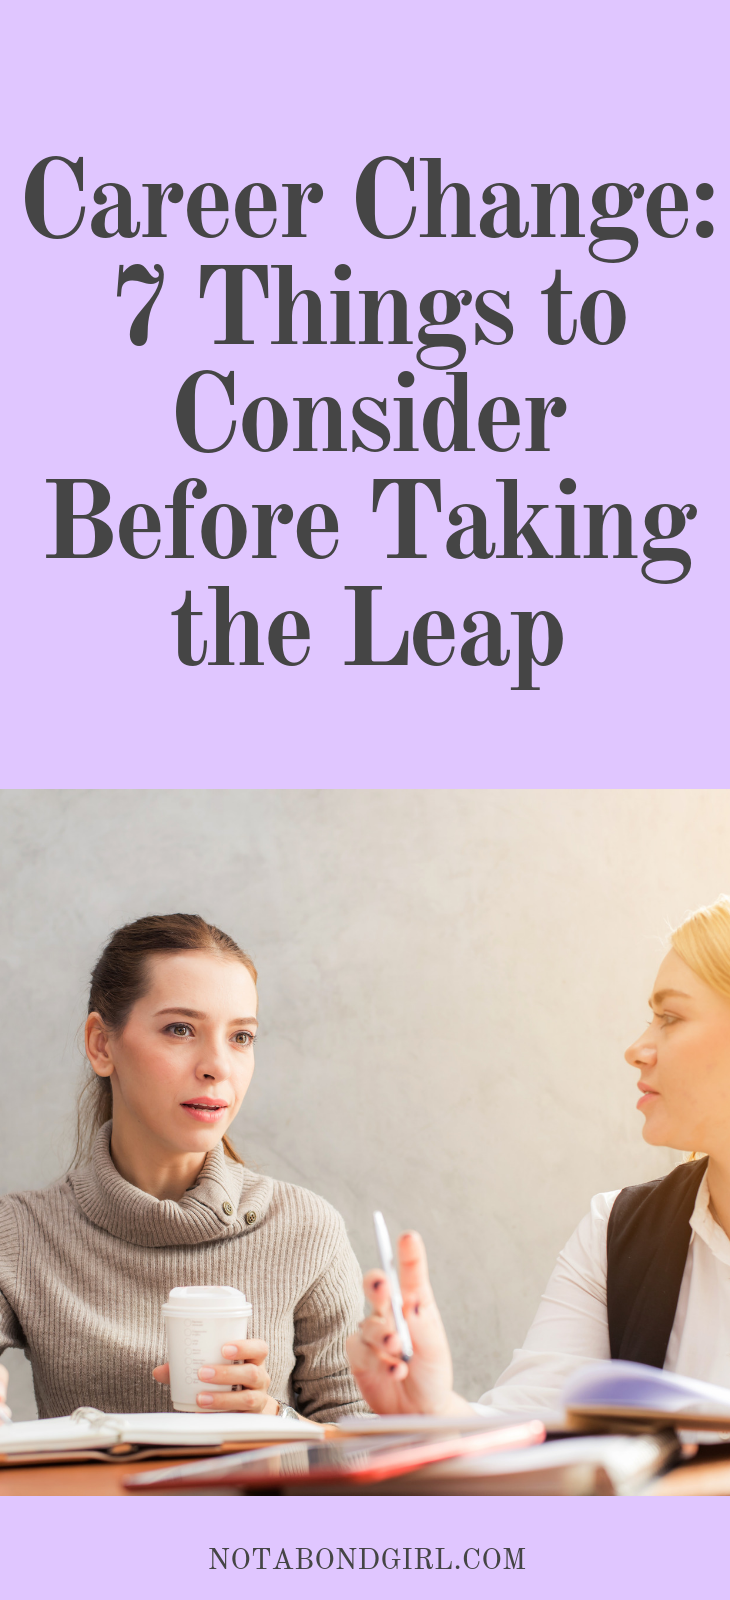 Career Change: 7 Things to Consider Before Taking the Leap;  #mindset #careeradvice #career #worklife #selfcare #personaldevelopment #job #financialfreedom #personalfinance #moneytips #worklife #sidehustle #entrepreneur #solopreneur #blogger #onlinebusiness #girlboss #bossbabe #millennial #inspiration #motivation #goalsetting #financialindependenceretireearly #financialindependence #financialplan #finance #lifestyle #inspirational #mindset #lifehacks #holisticwealth #wealth #loa